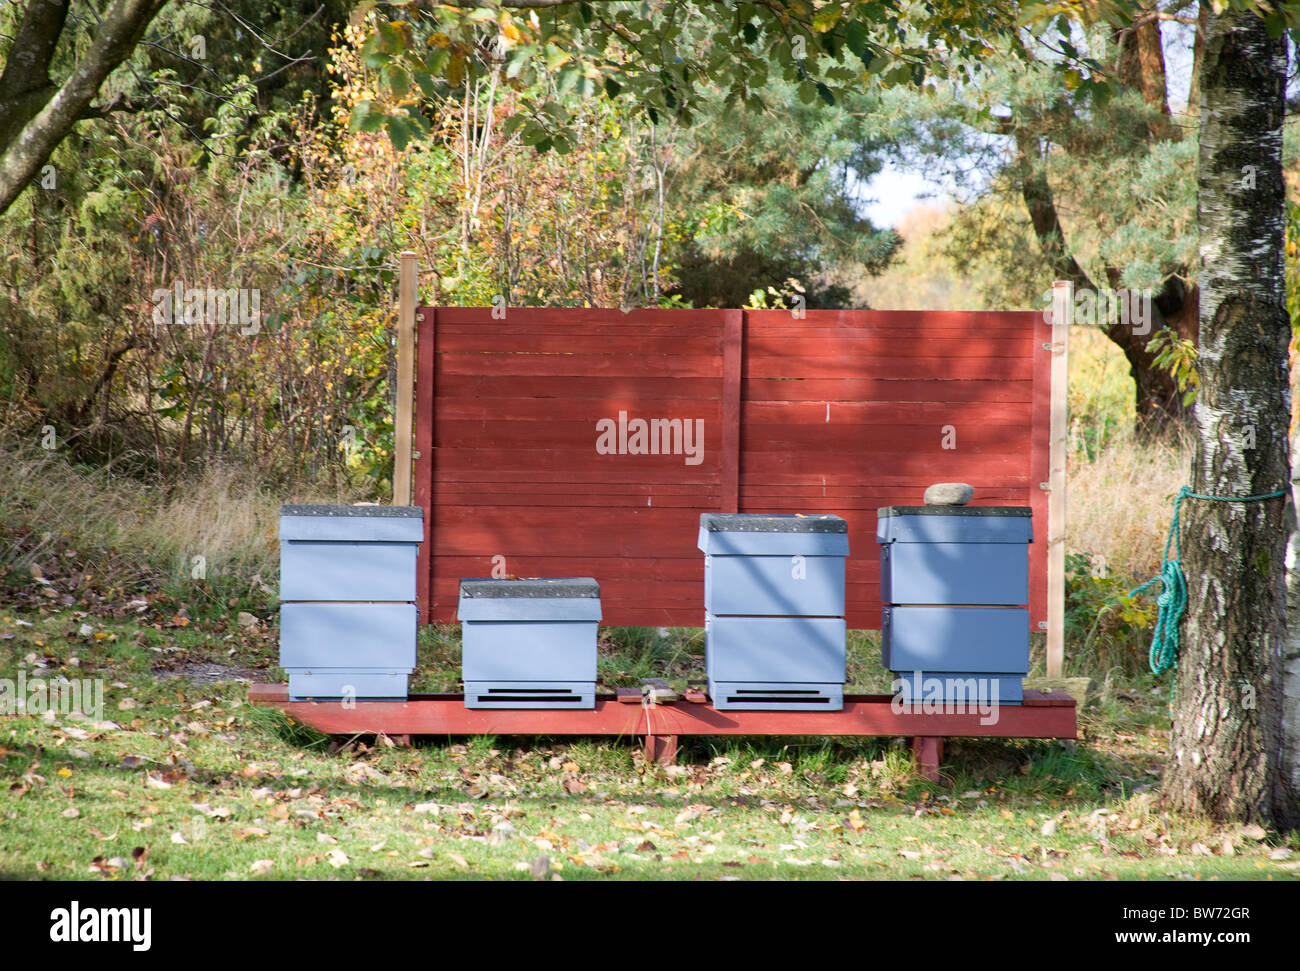 Bee hives positioned behind a wind brake. - Stock Image